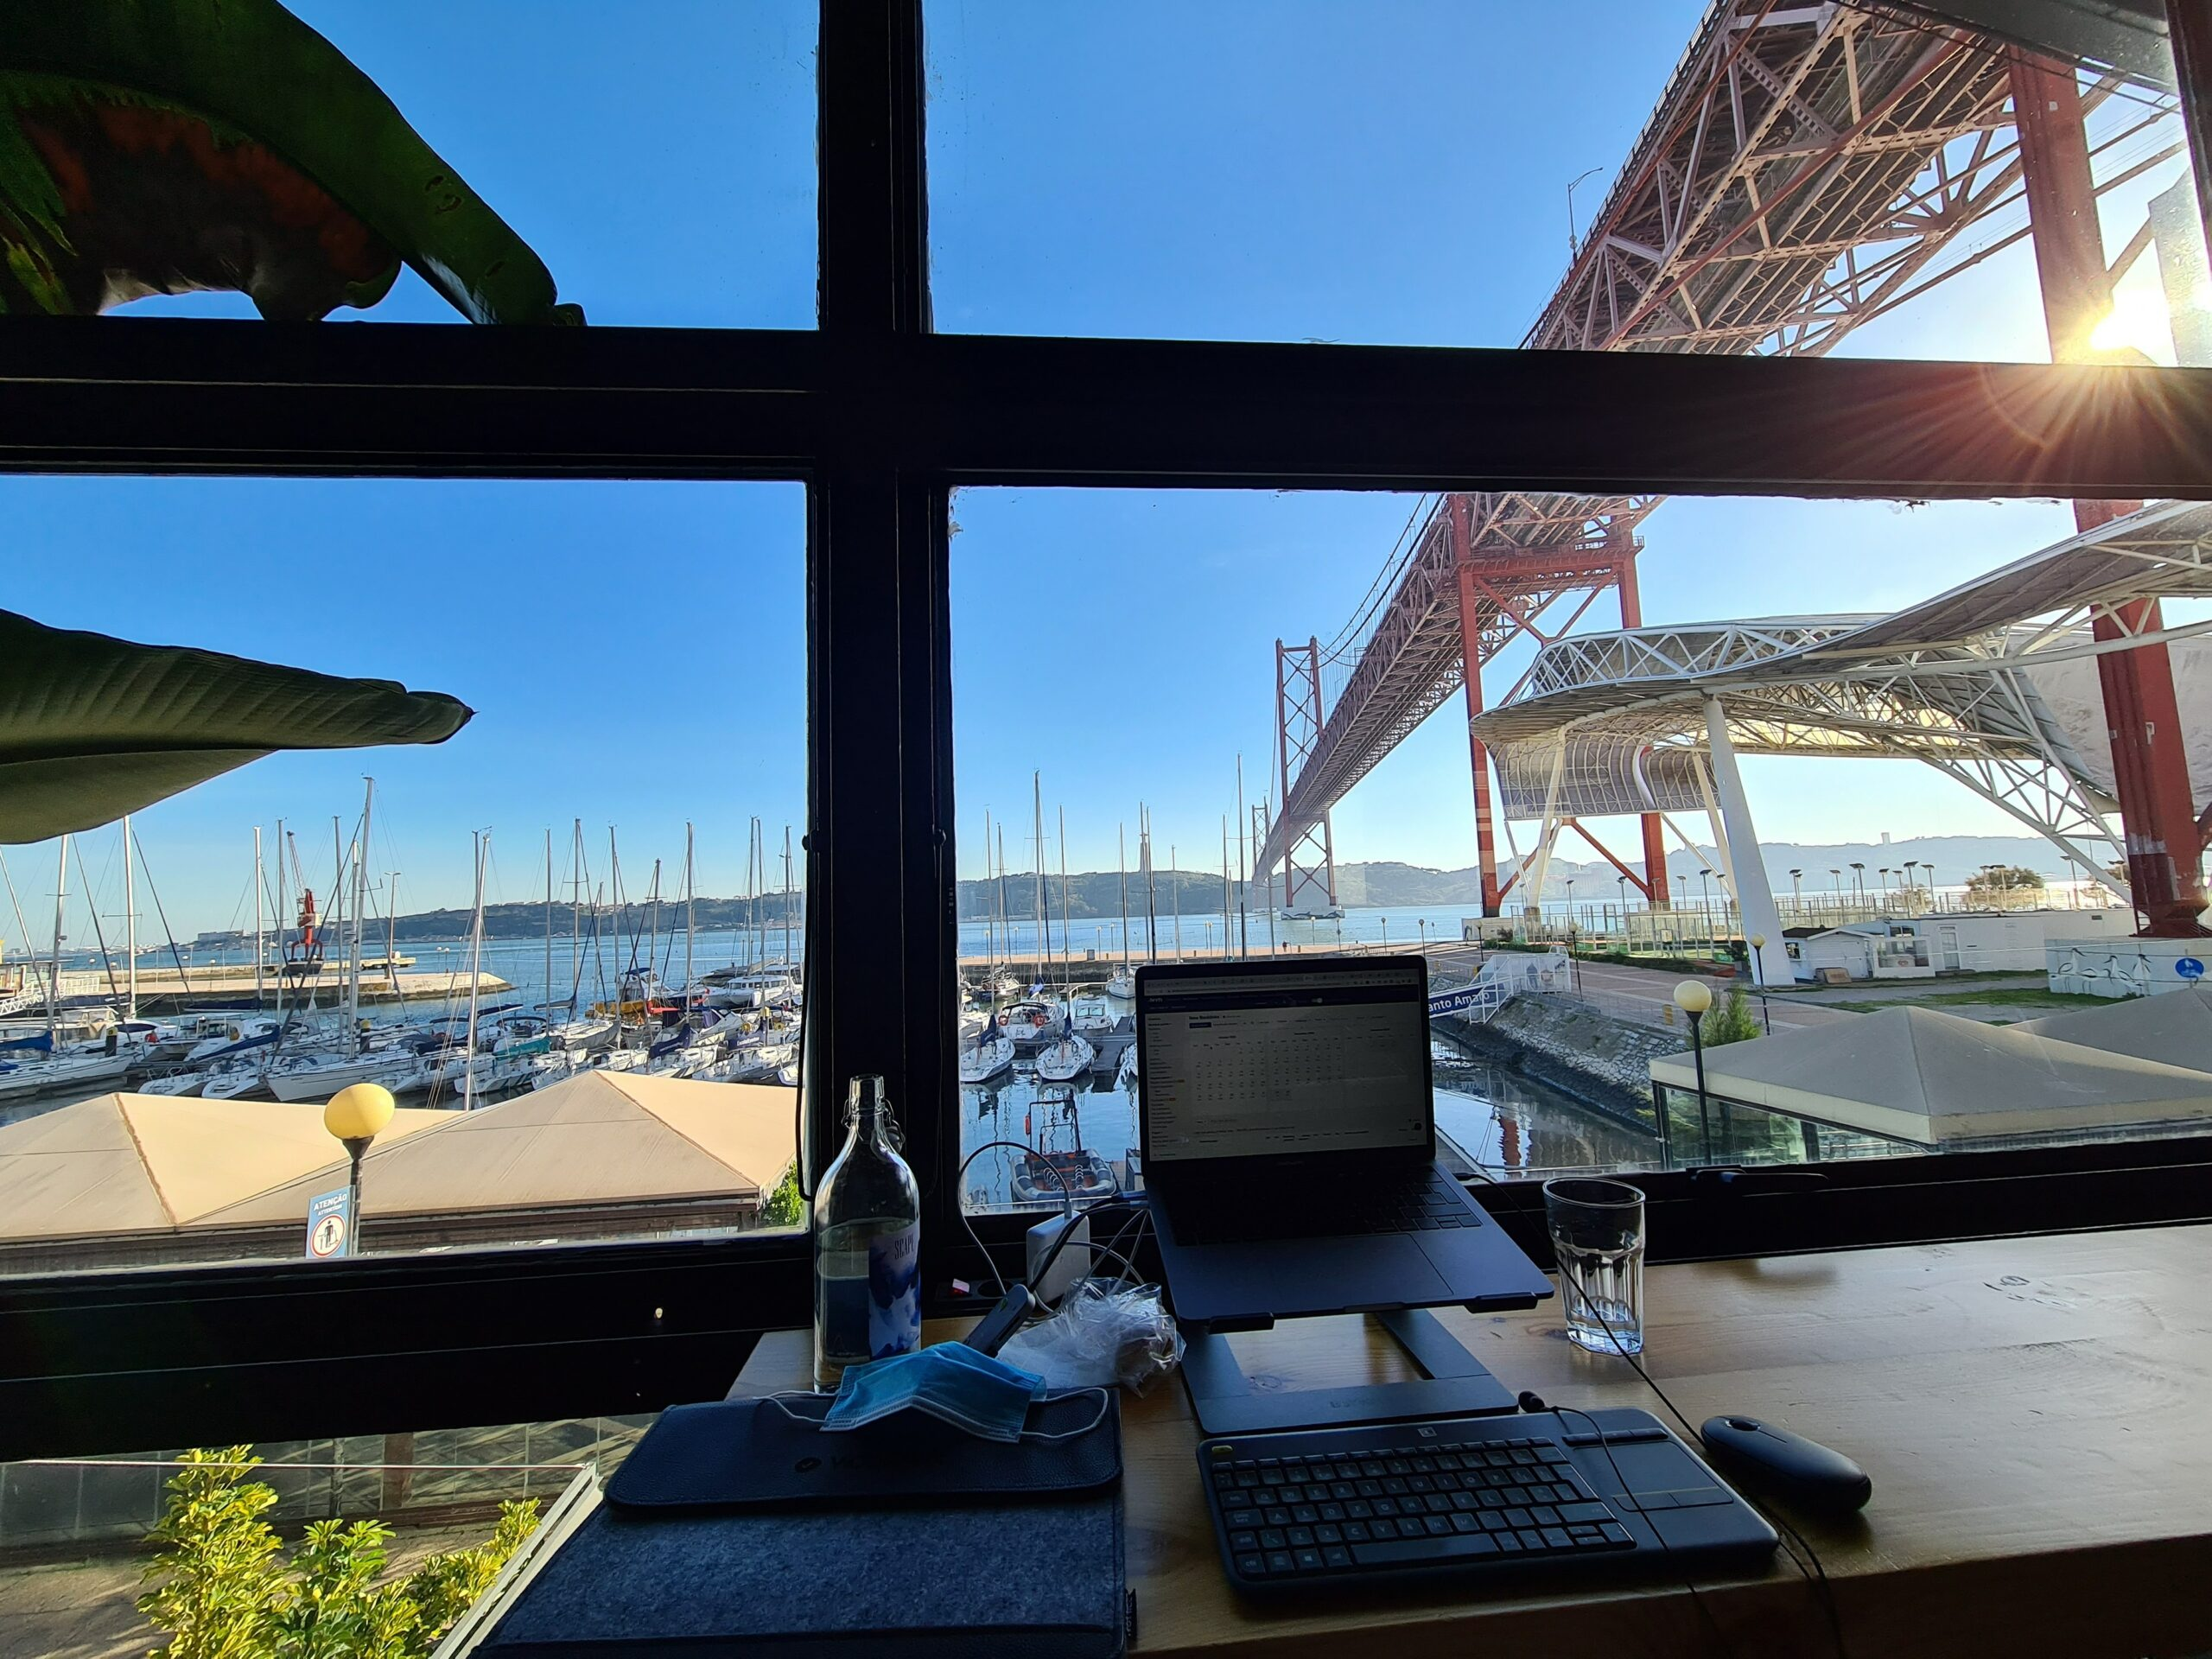 Working from Lisbon